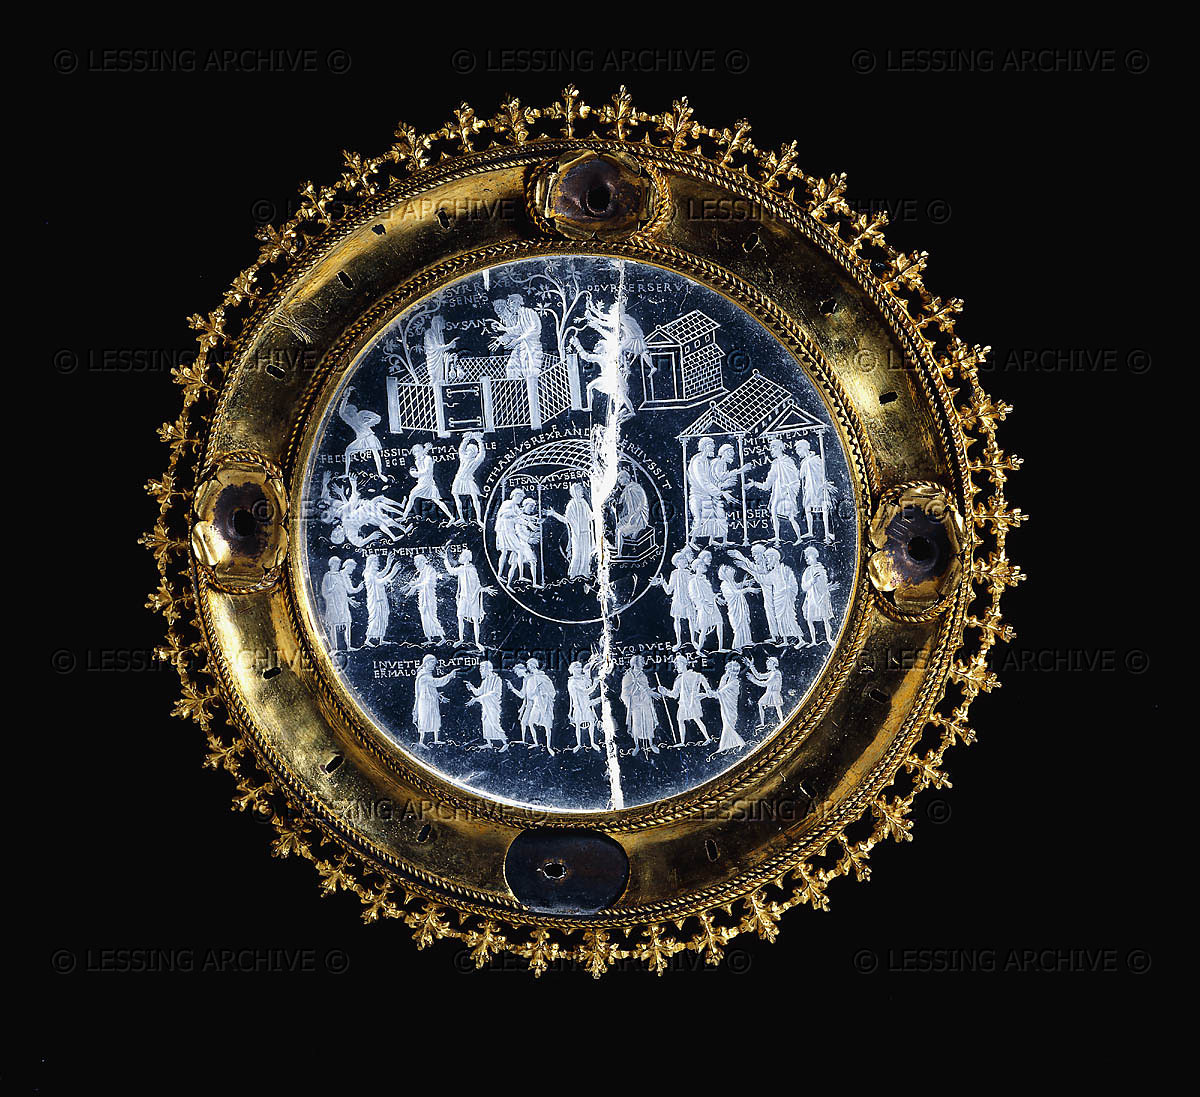 0310000246 The Lothar, or Susanna Crystal, c855-c869. The rock crystal is engraved with scenes of the story of Susanna as recorded in the Apocrypha. Each scene is accompanied by an inscription drawn from the Vulgate. In the first four scenes Susanna is